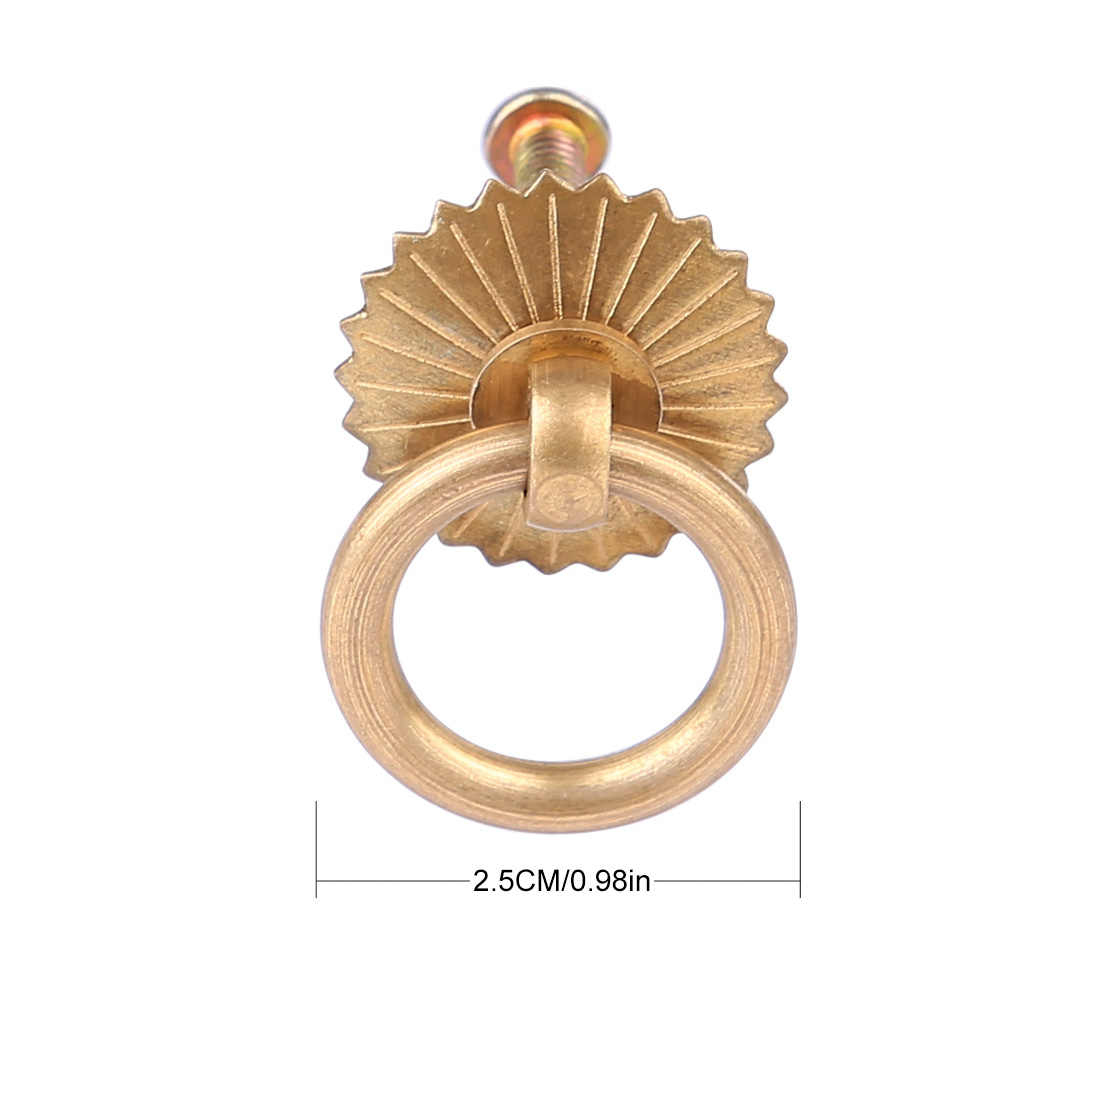 10pcs/8pcs/6pcs J2.5cm Antique Copper Furniture Ring Simple Handle Drawer Pull Handle Knobs And Handles For home Furniture gold